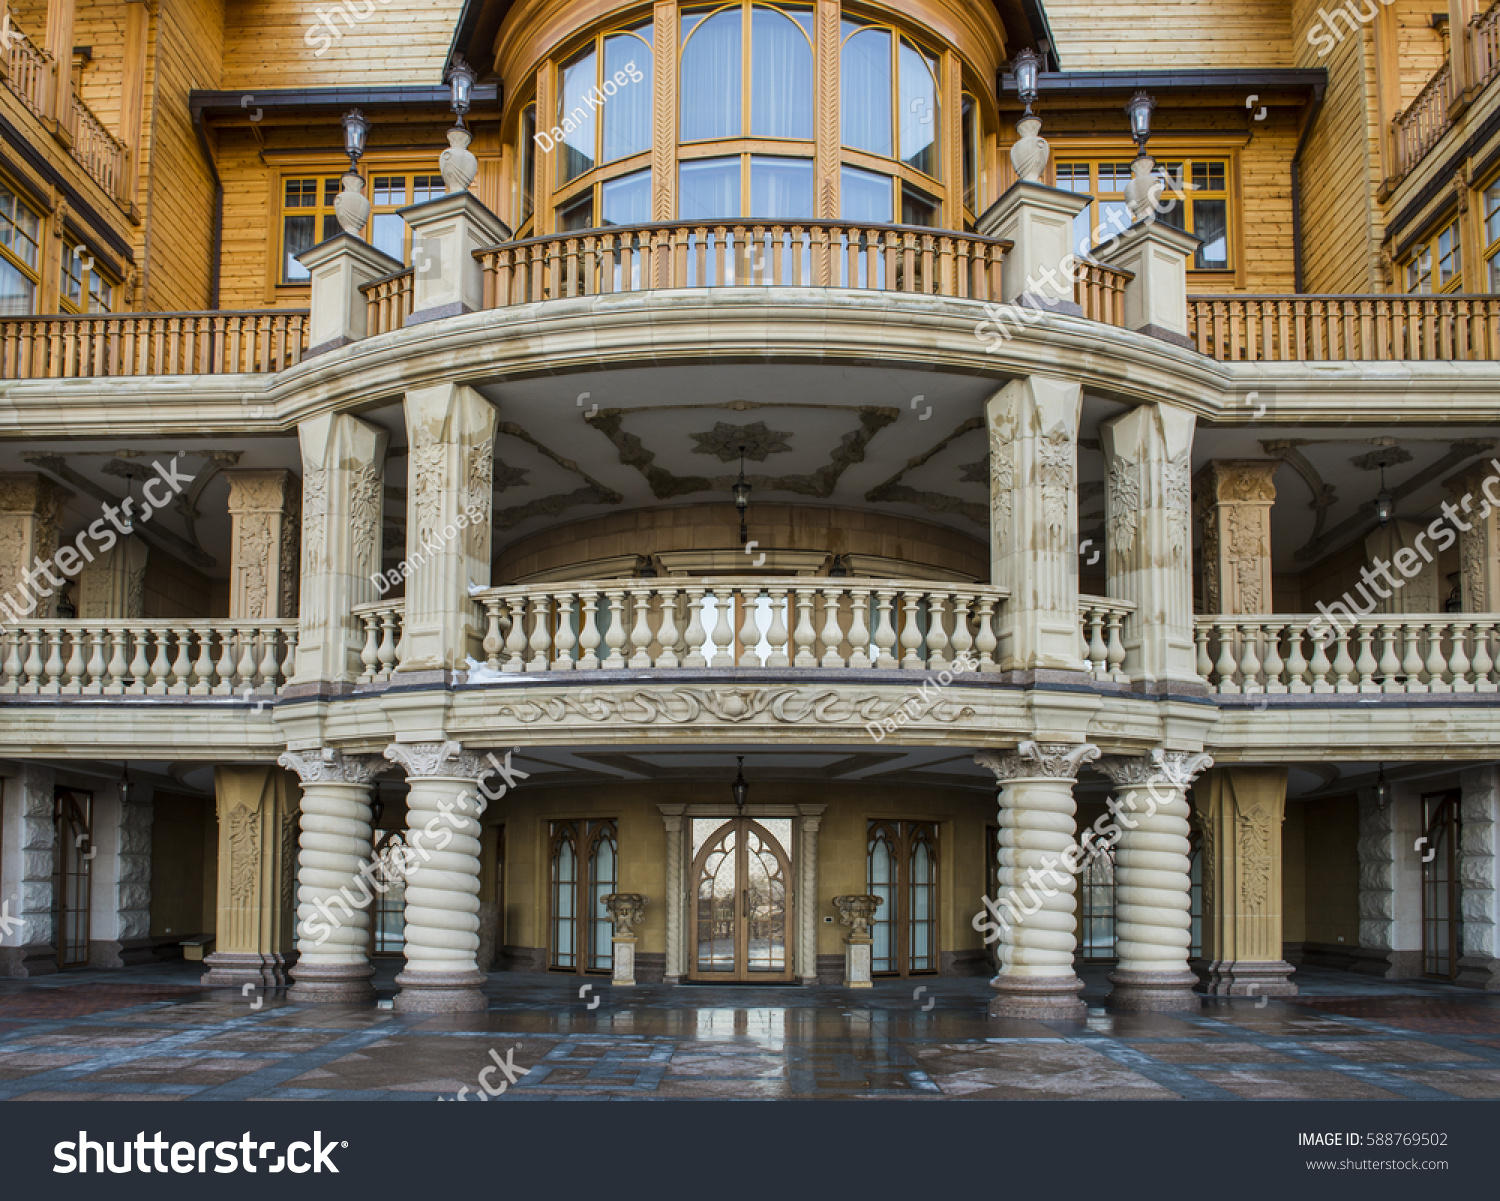 Kiev Ukraine February 19 2017: Wooden Palace Of Viktor . Full resolution‎  file, nominally Width 1500 Height 1201 pixels, file with #996F32.